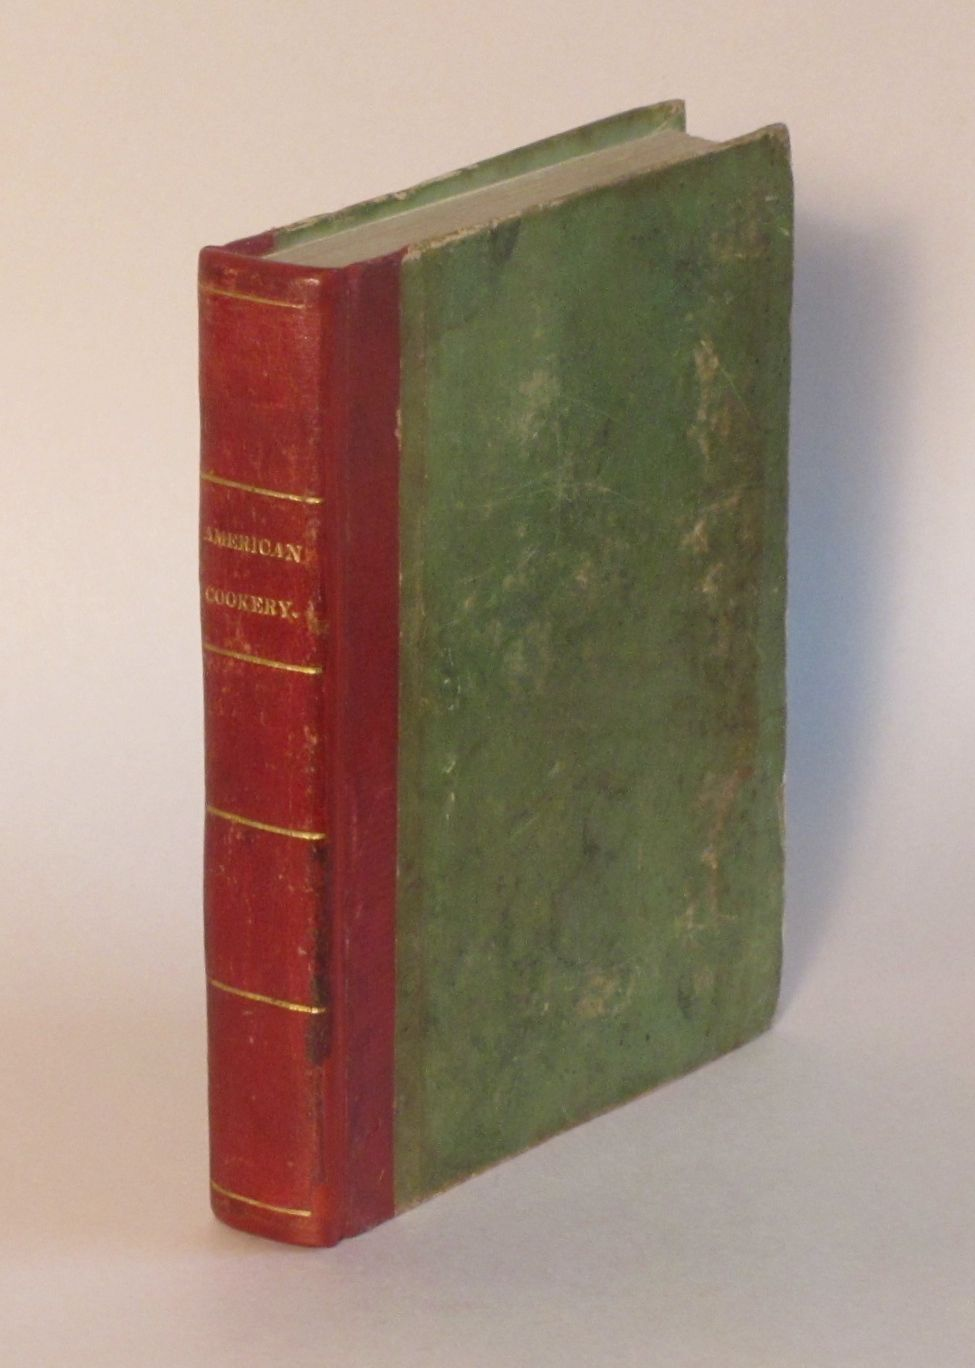 Modern American Cookery, containing directions for making soups, roasting, boiling, baking, dressing vegetables, poultry, fish ... &c., with a list of family medical recipes and a valuable miscellany. Prudence Smith.